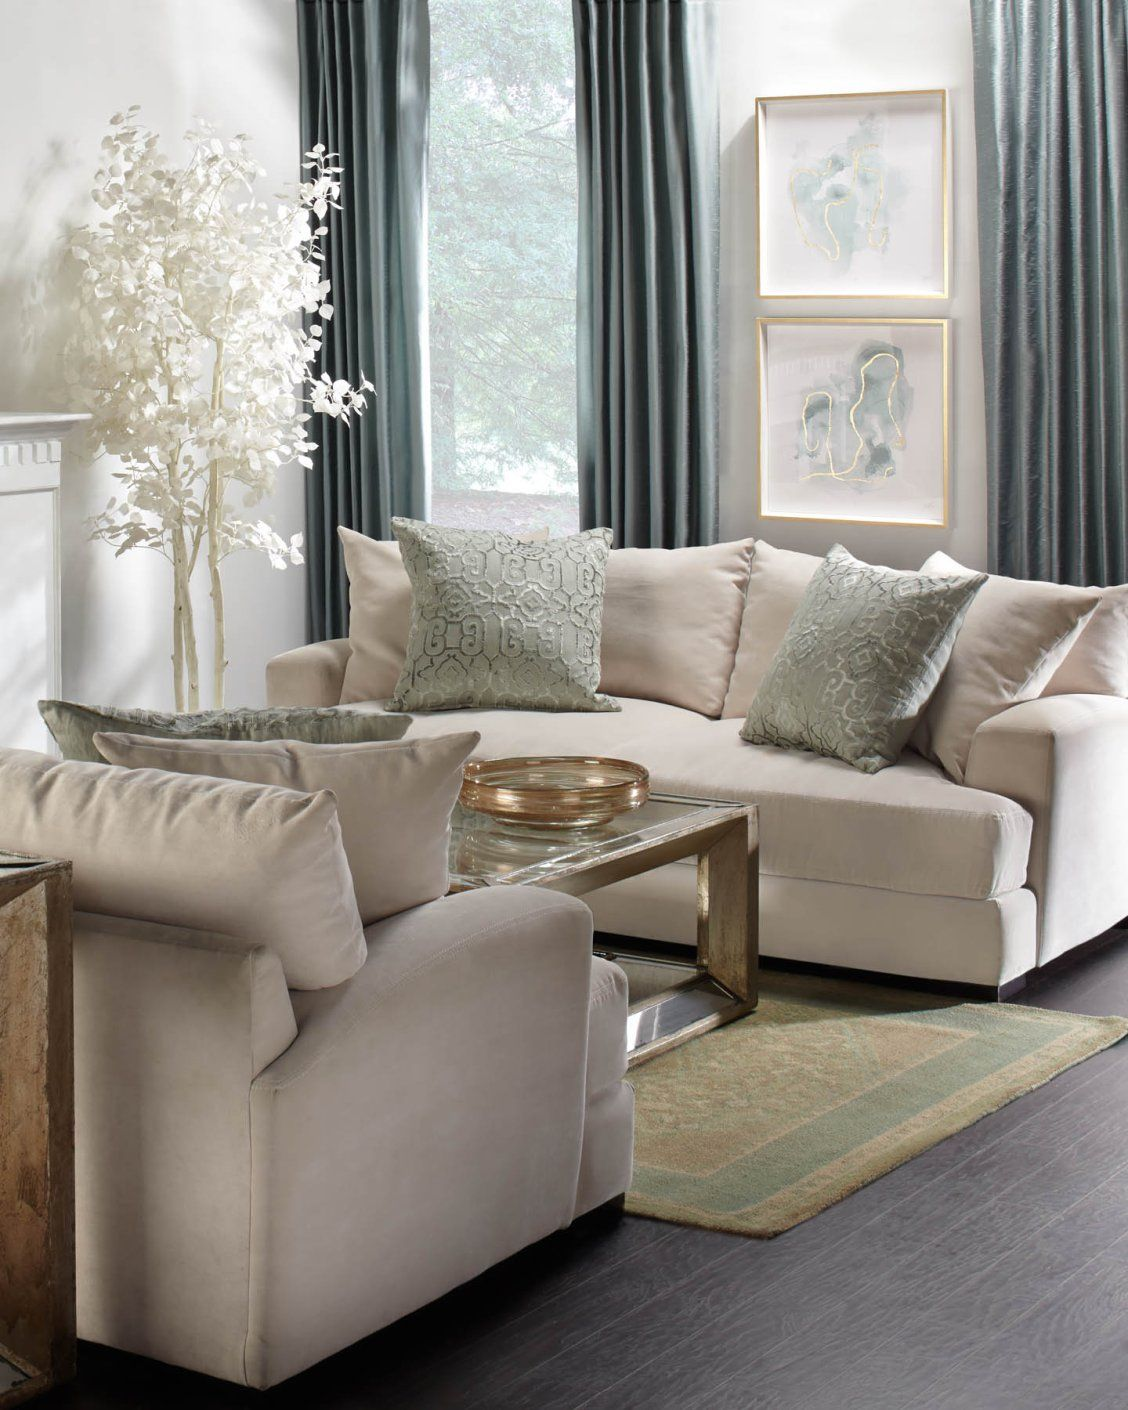 Deep Seated Comfort Is Integral To The Design Of Stella Sofa With Wide Swooping Arms And Seats Inspires A Chic Yet Relaxed Feel